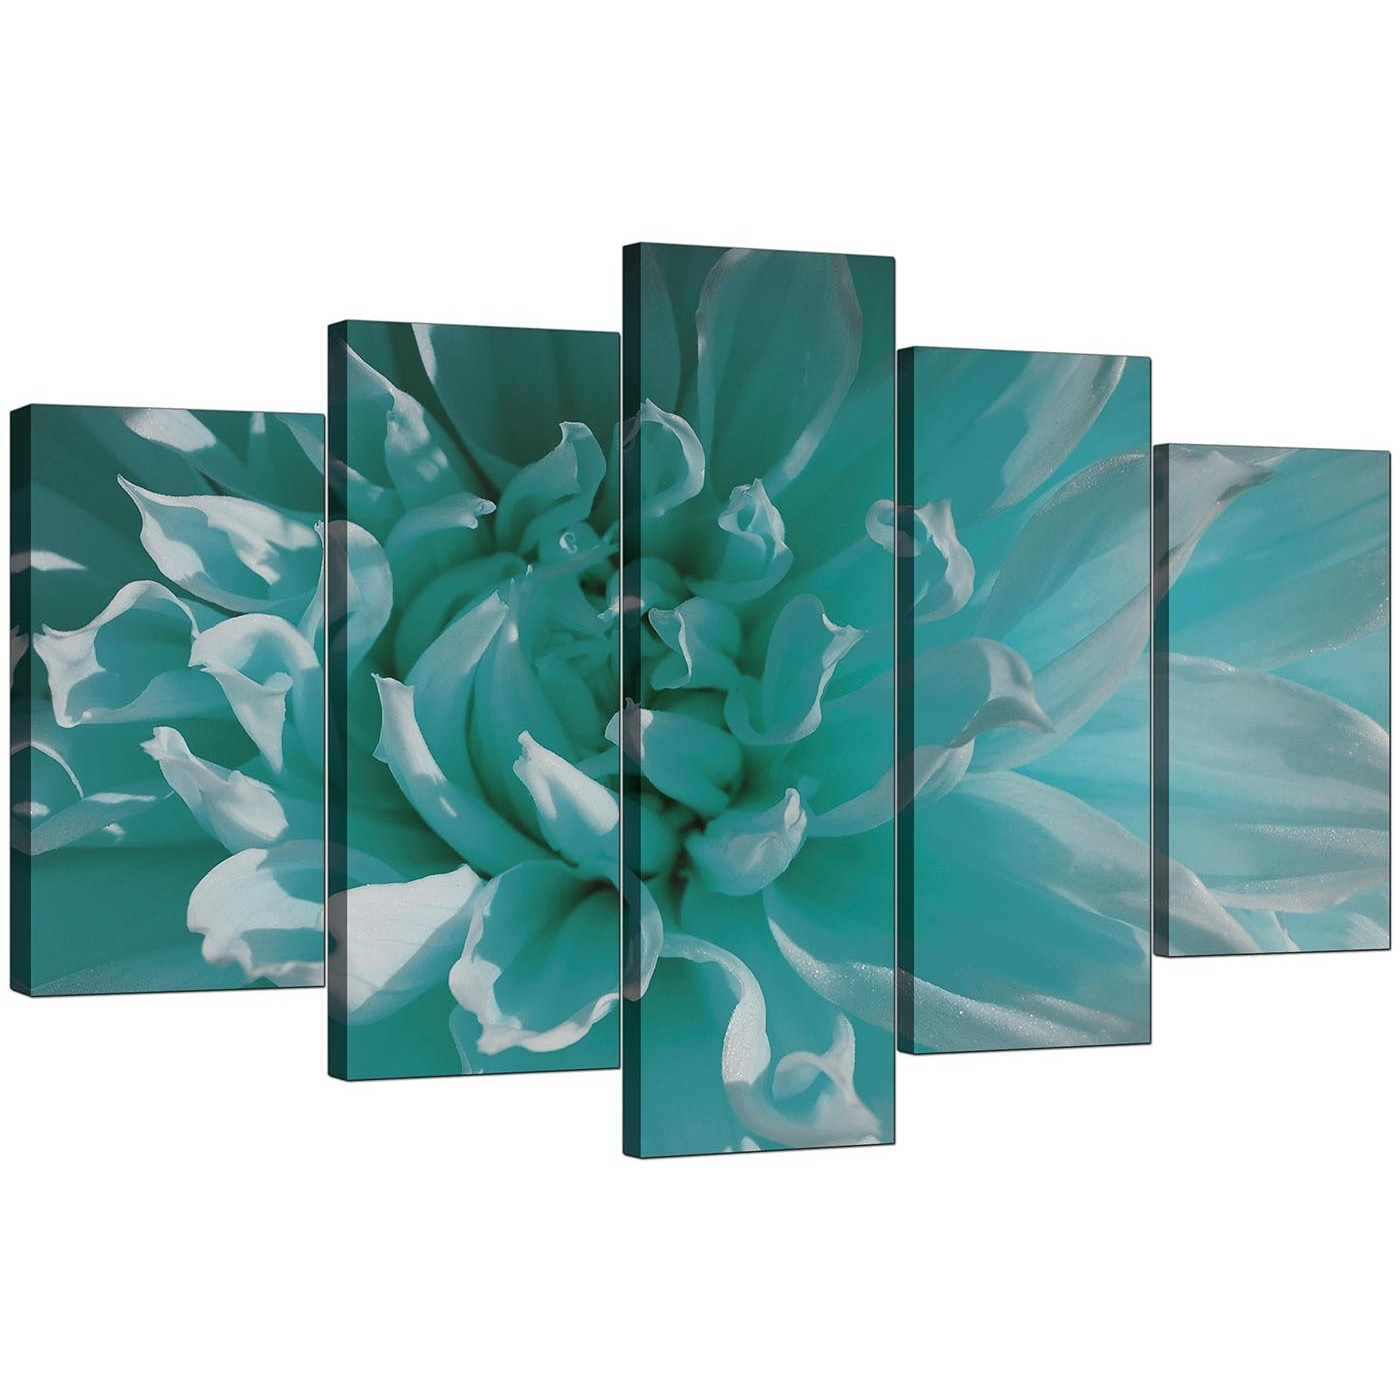 Extra Large Flower Canvas Wall Art 5 Piece In Teal With Regard To Newest Teal Wall Art (Gallery 14 of 15)